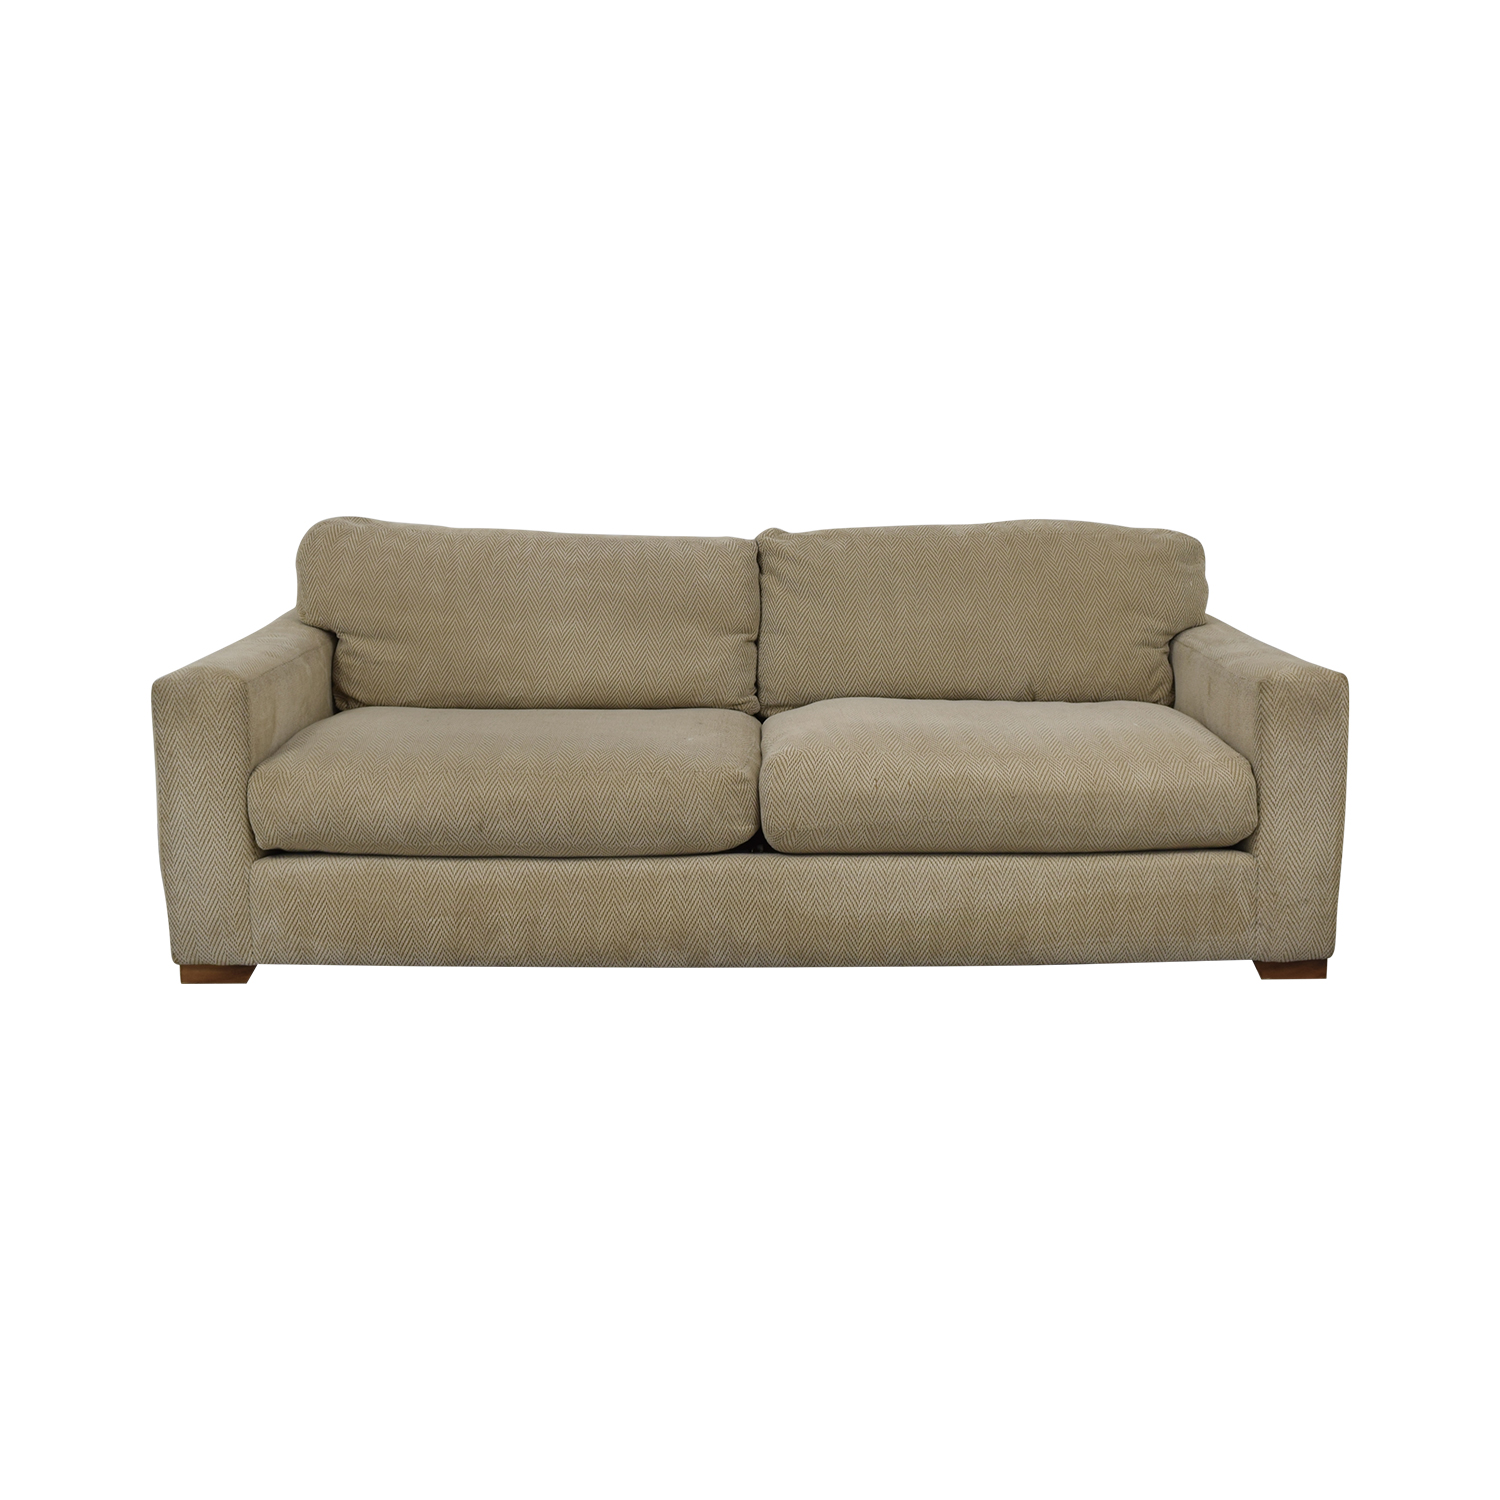 Rowe Furniture Rowe Furniture Dakota Two Cushion Sofa used